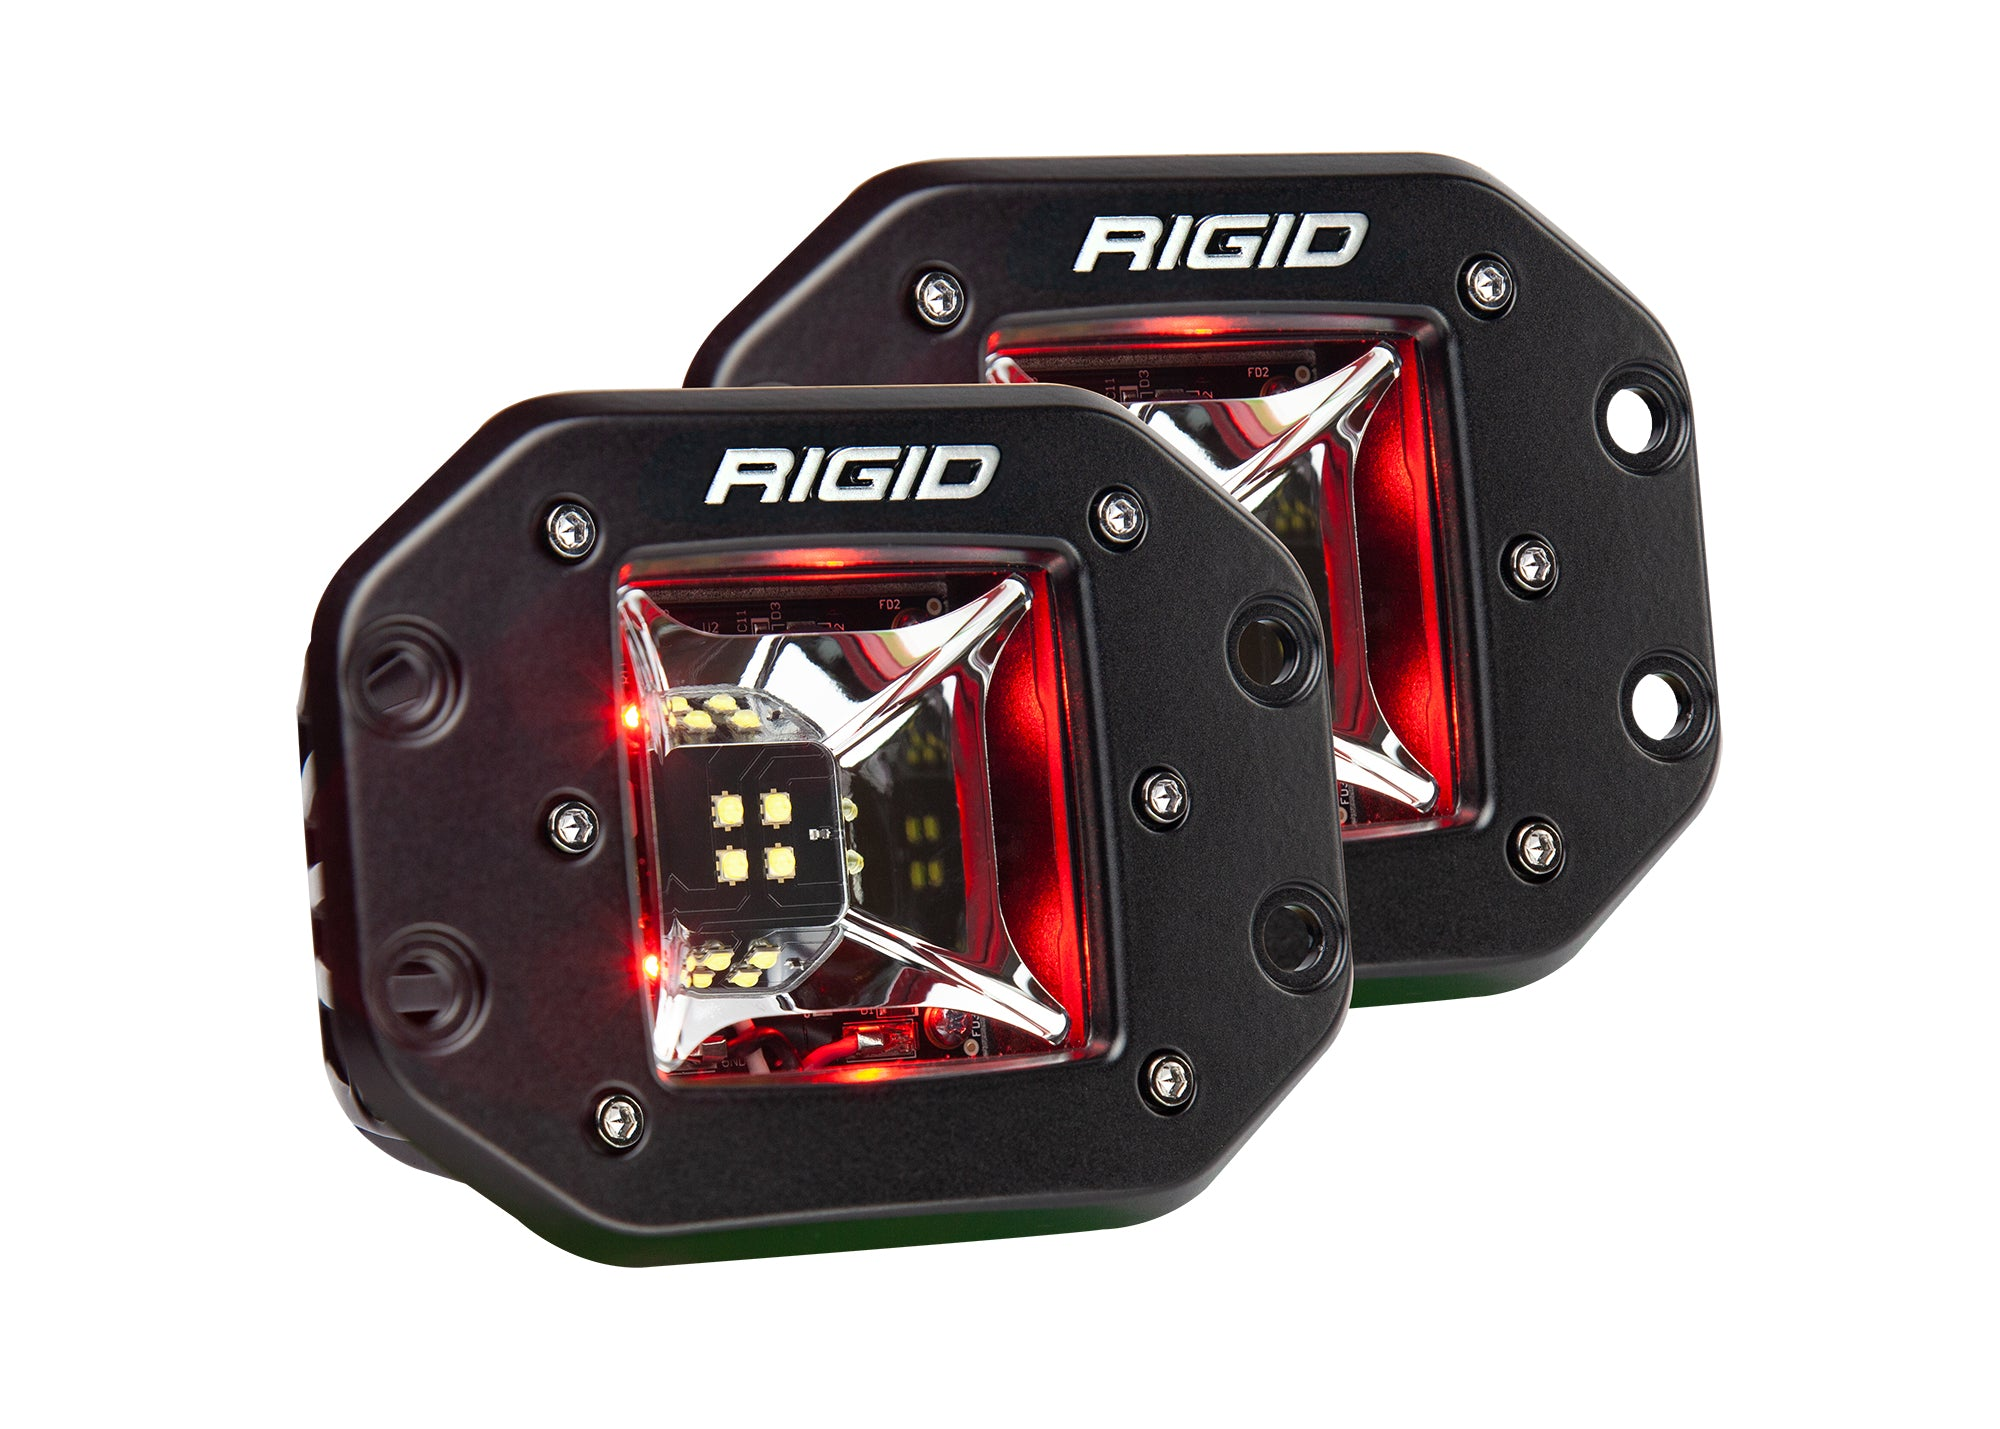 RIGID RADIANCE SCENE Flush Mount Pod